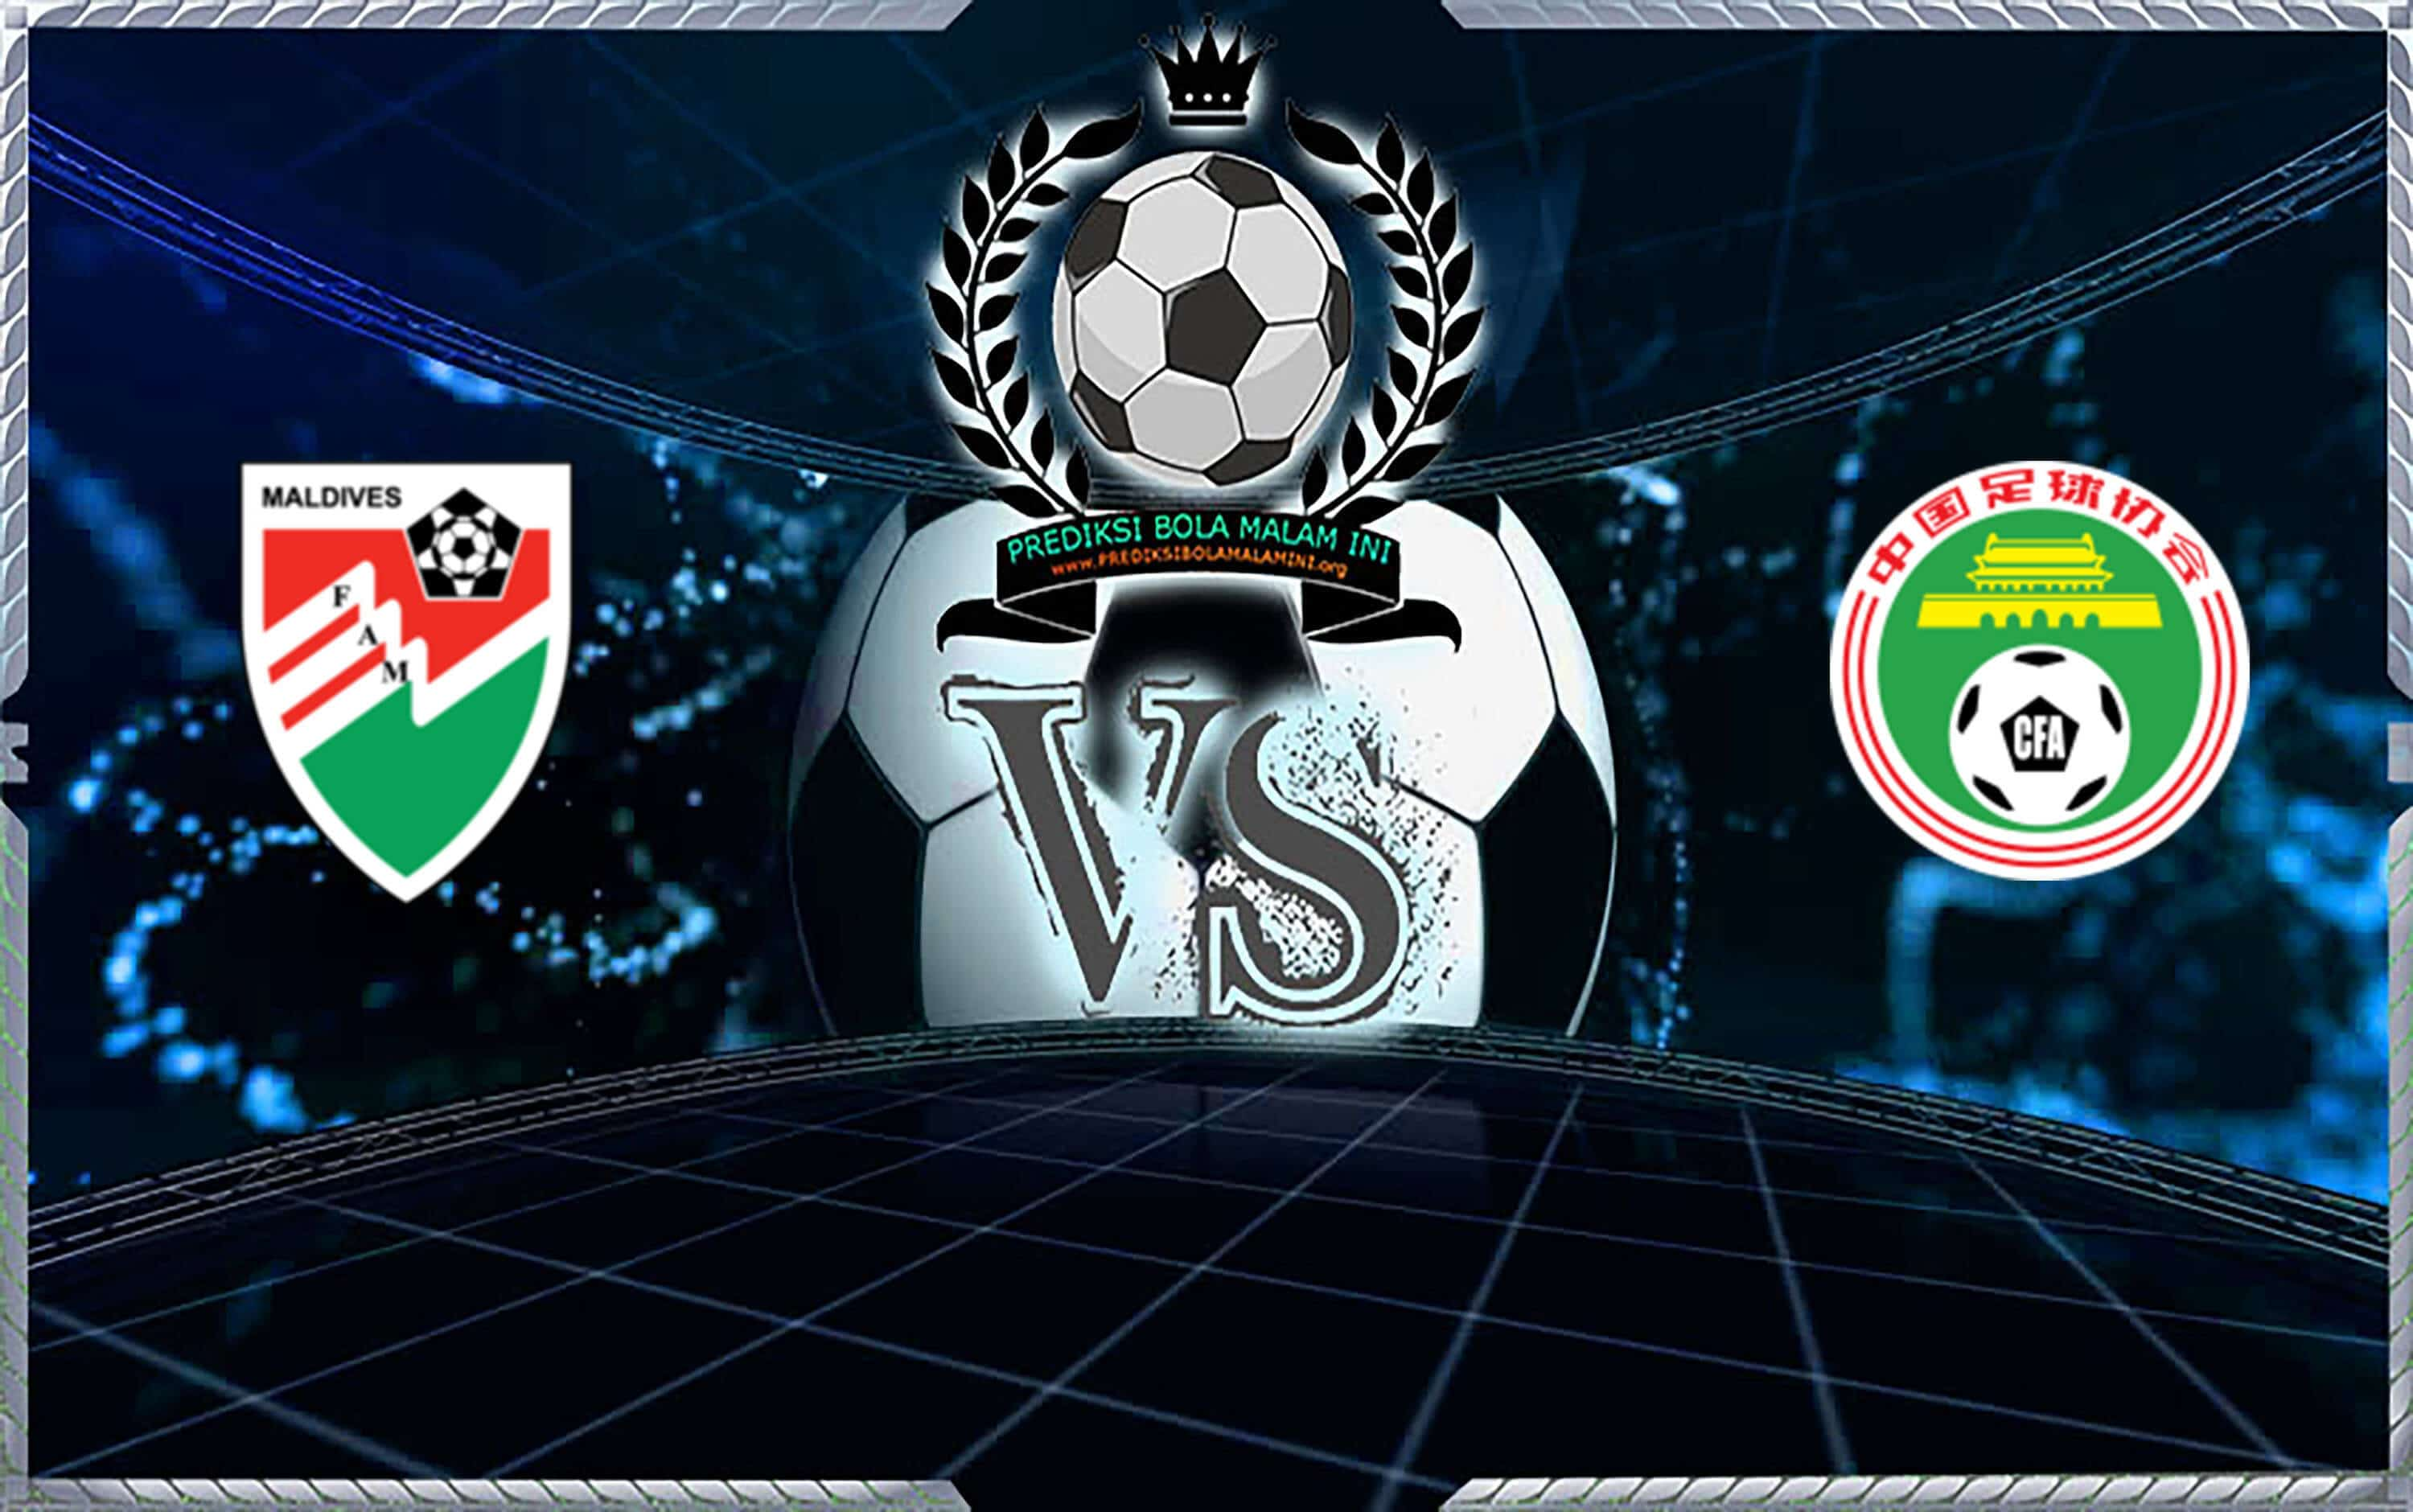 Prediksi Skor Maldives Vs China PR 10 September 2019